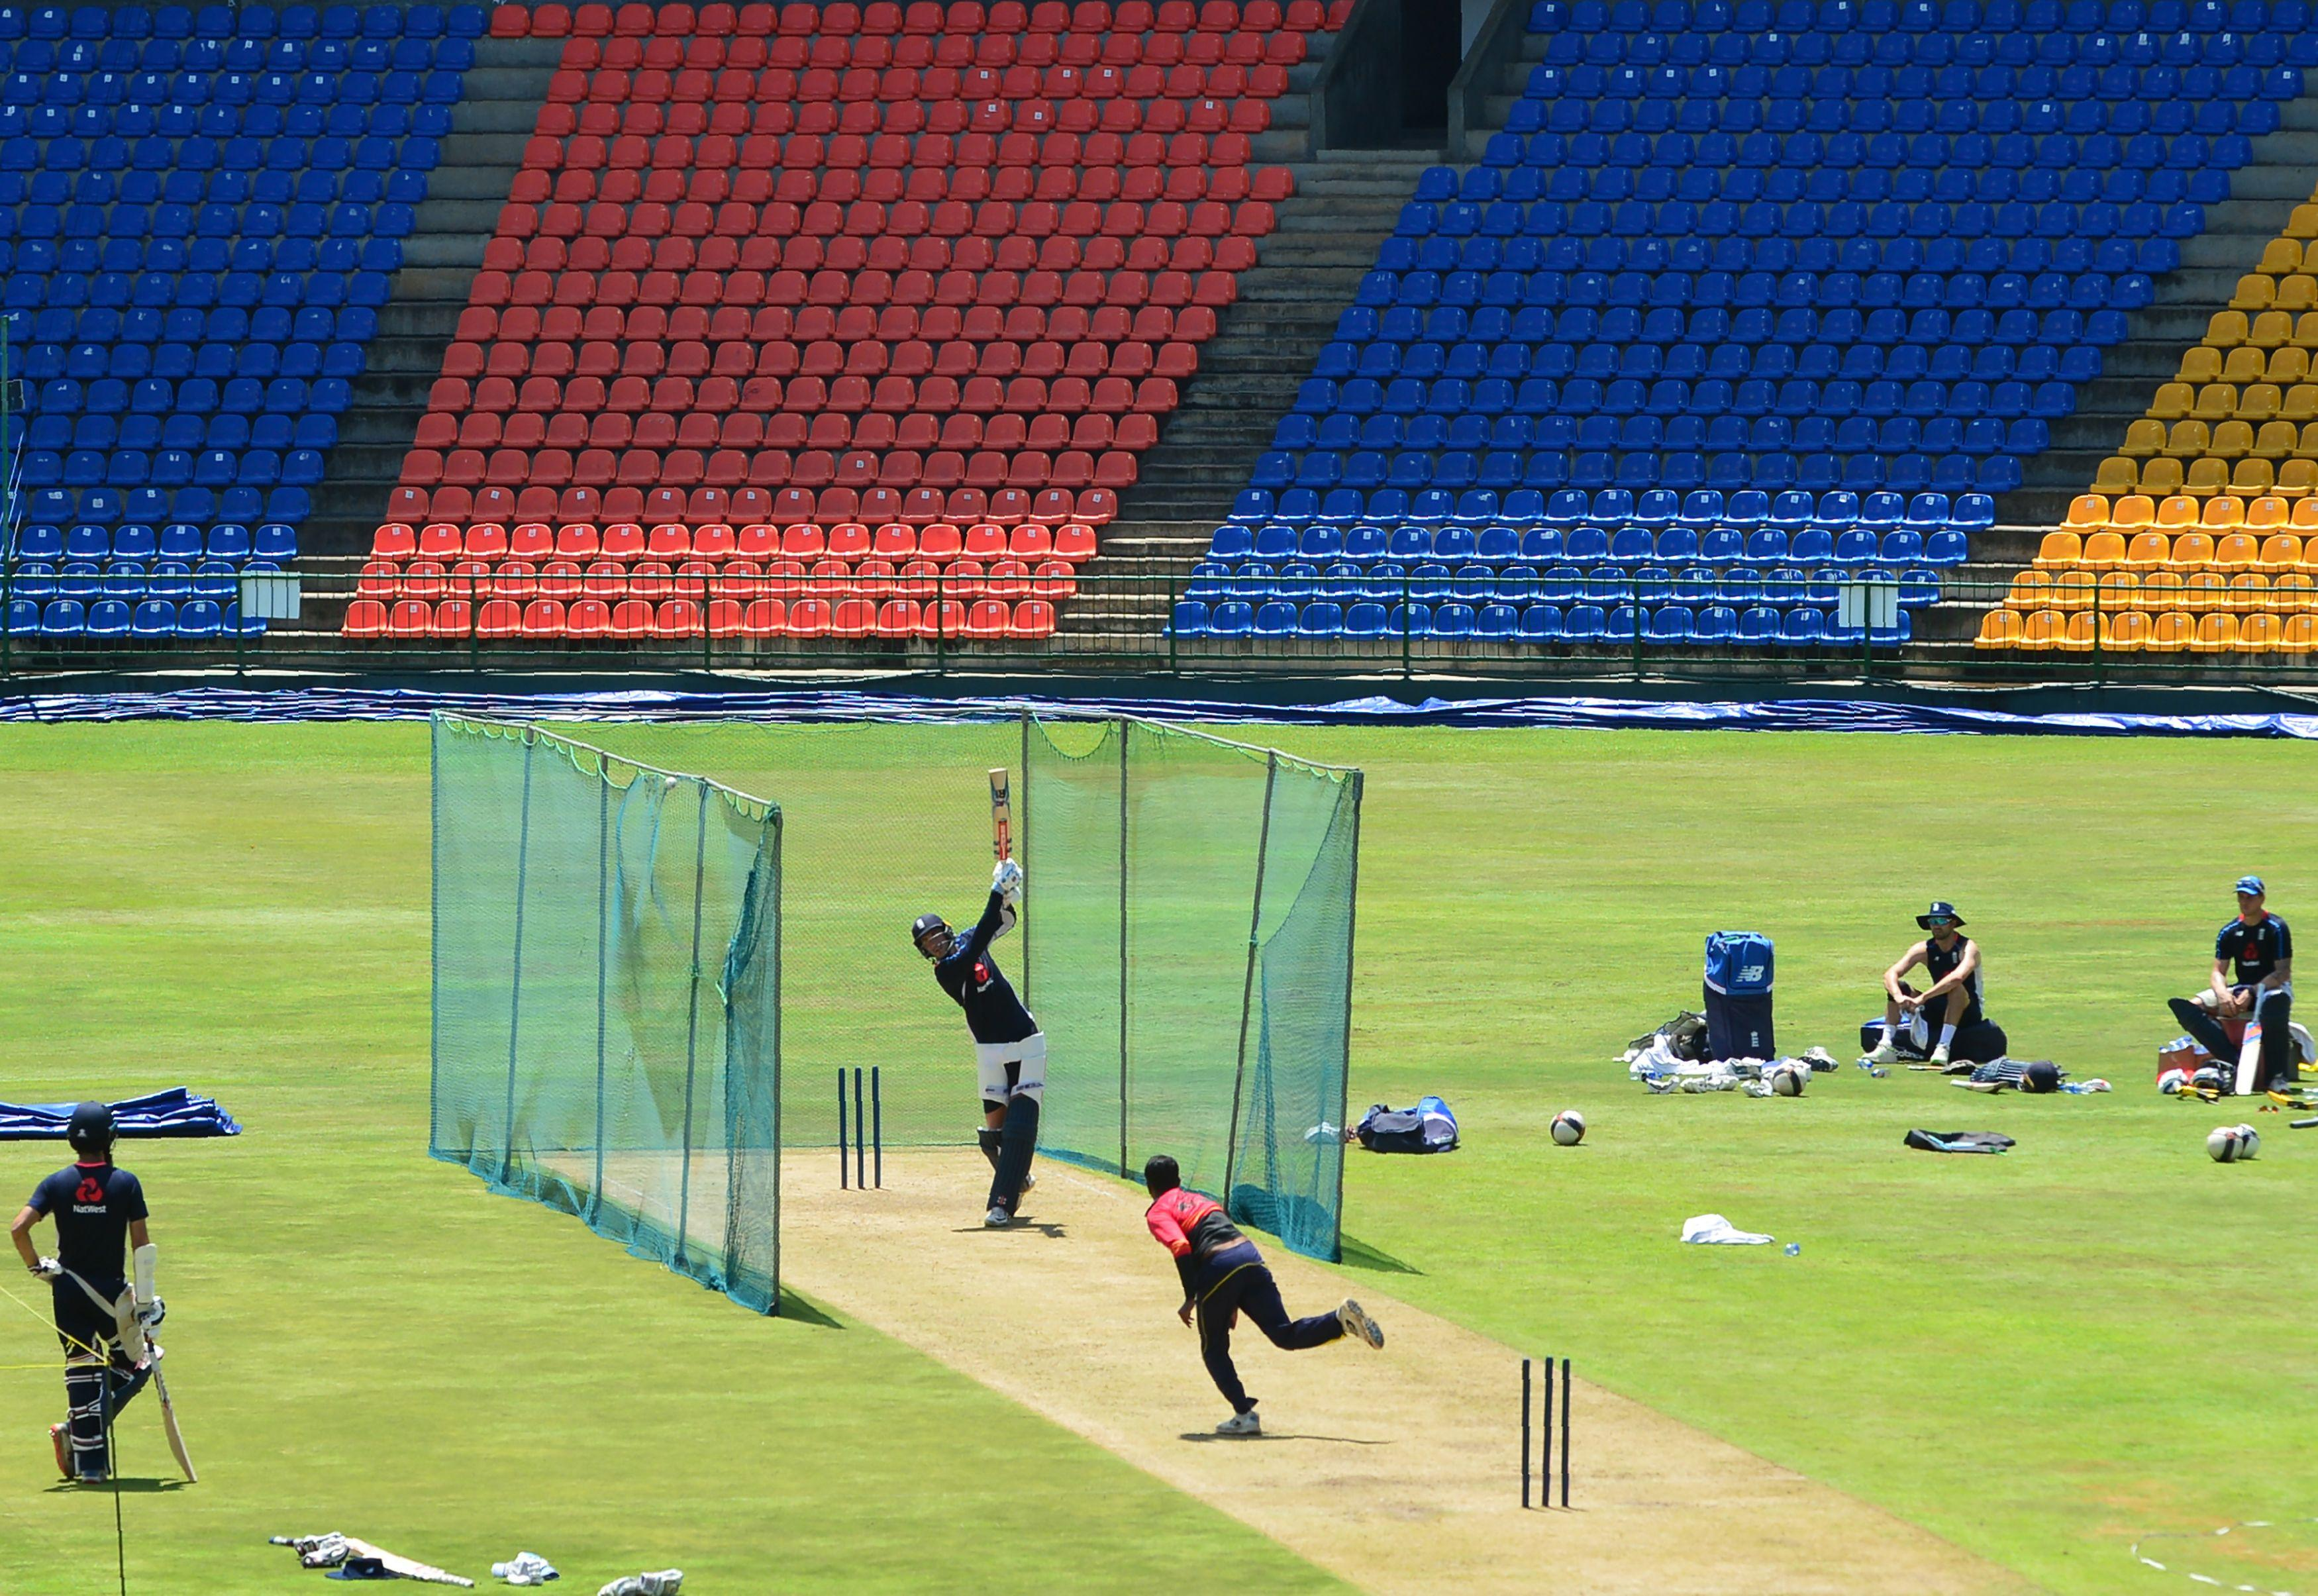 England were in training ahead of the third ODI in Kandy